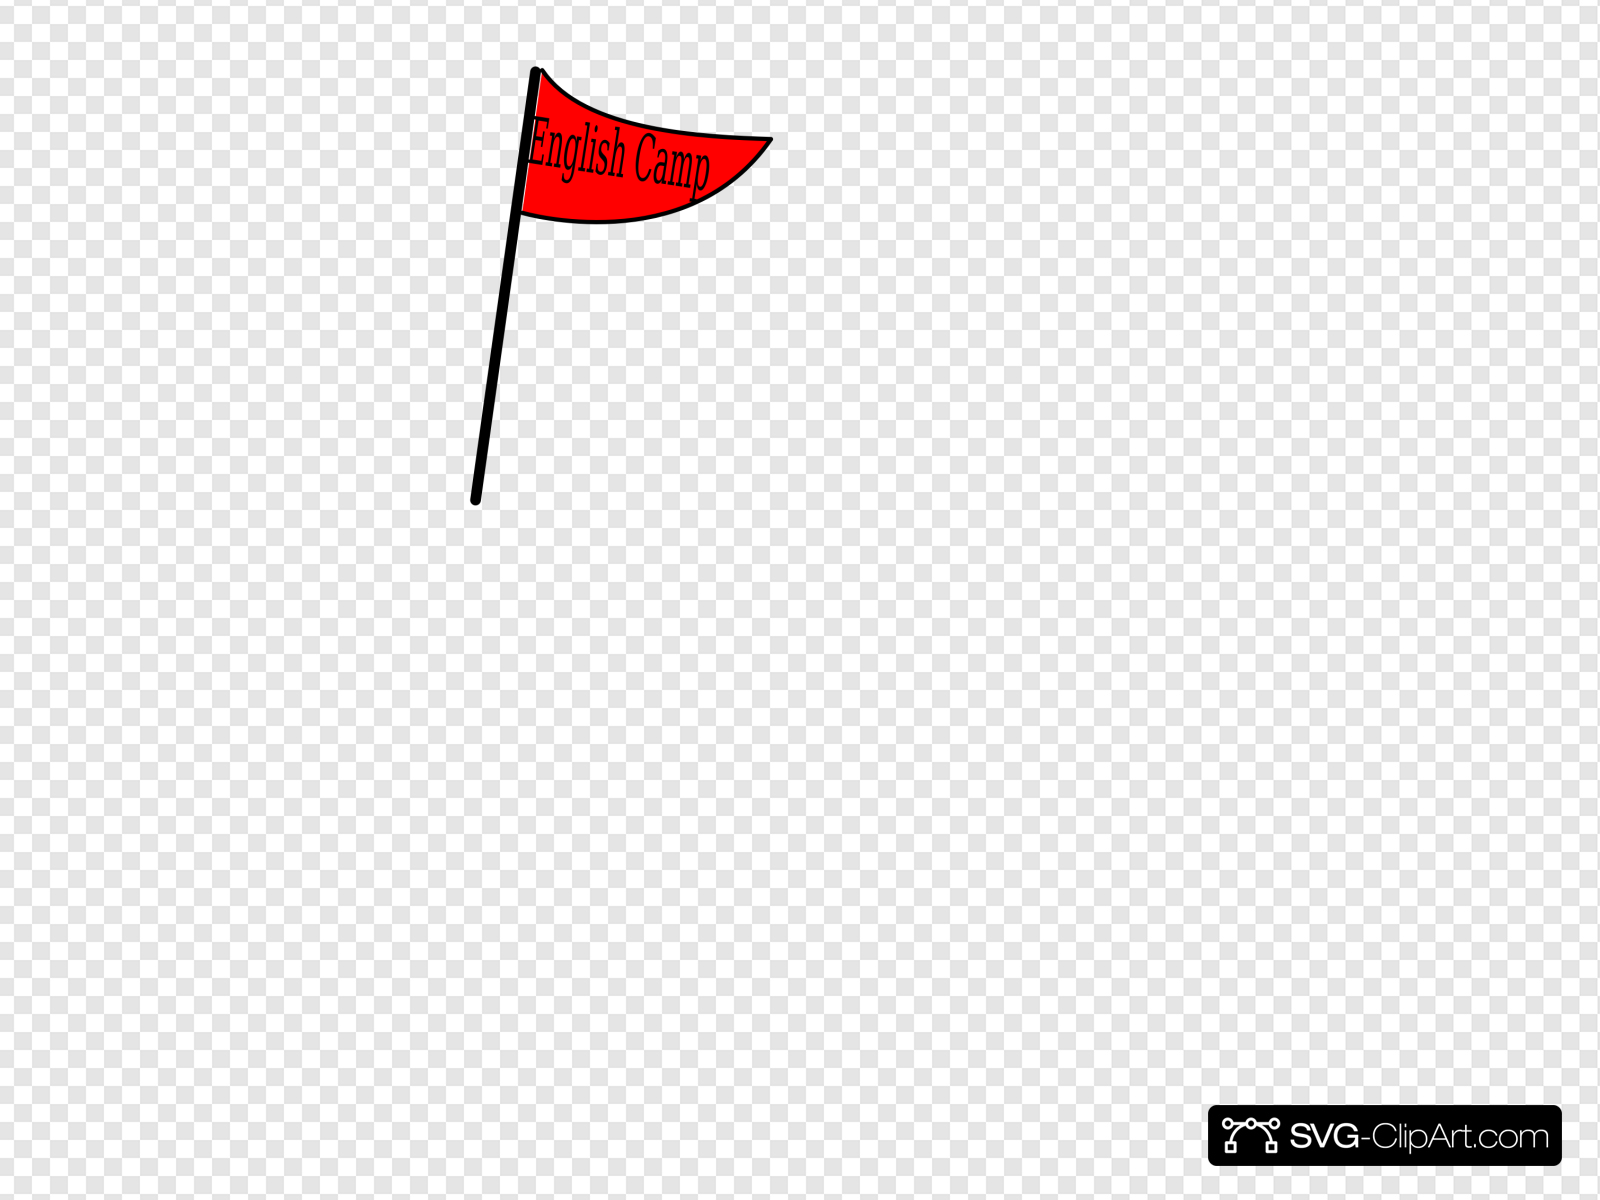 Camp flag clipart graphic library download Red Flag English Camp Clip art, Icon and SVG - SVG Clipart graphic library download